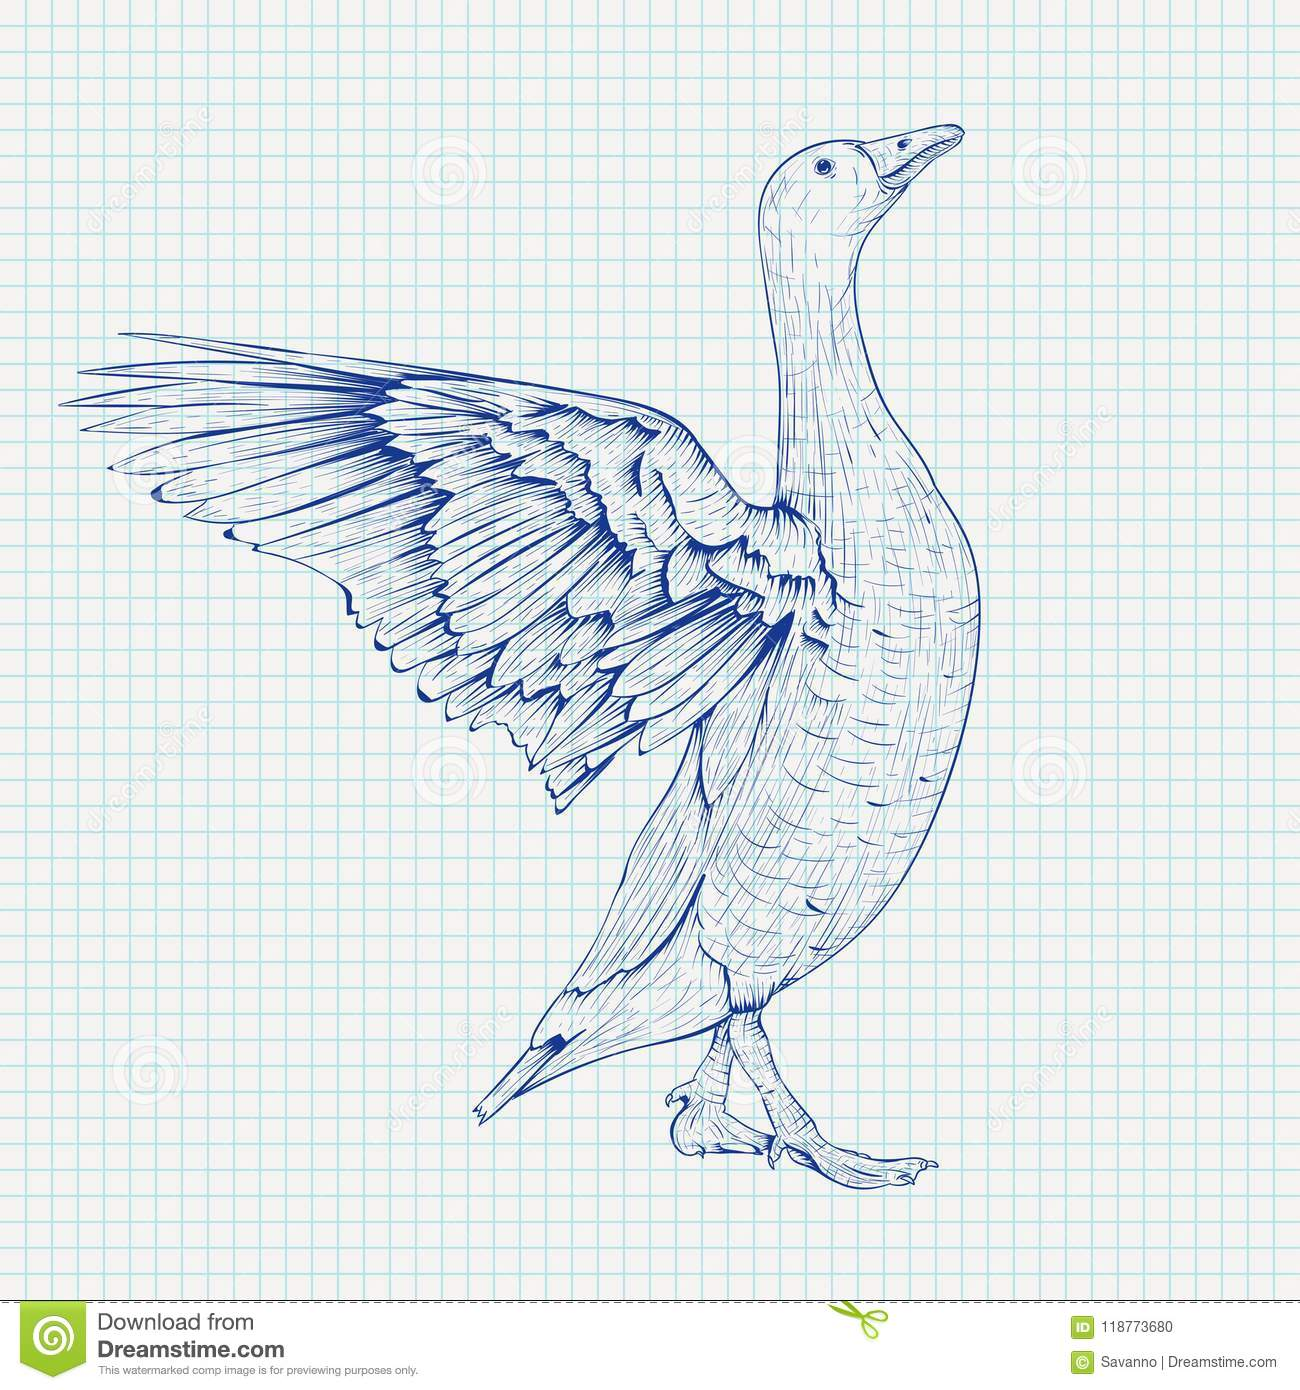 Goose sketch angry bird with lifted wings on lined paper background